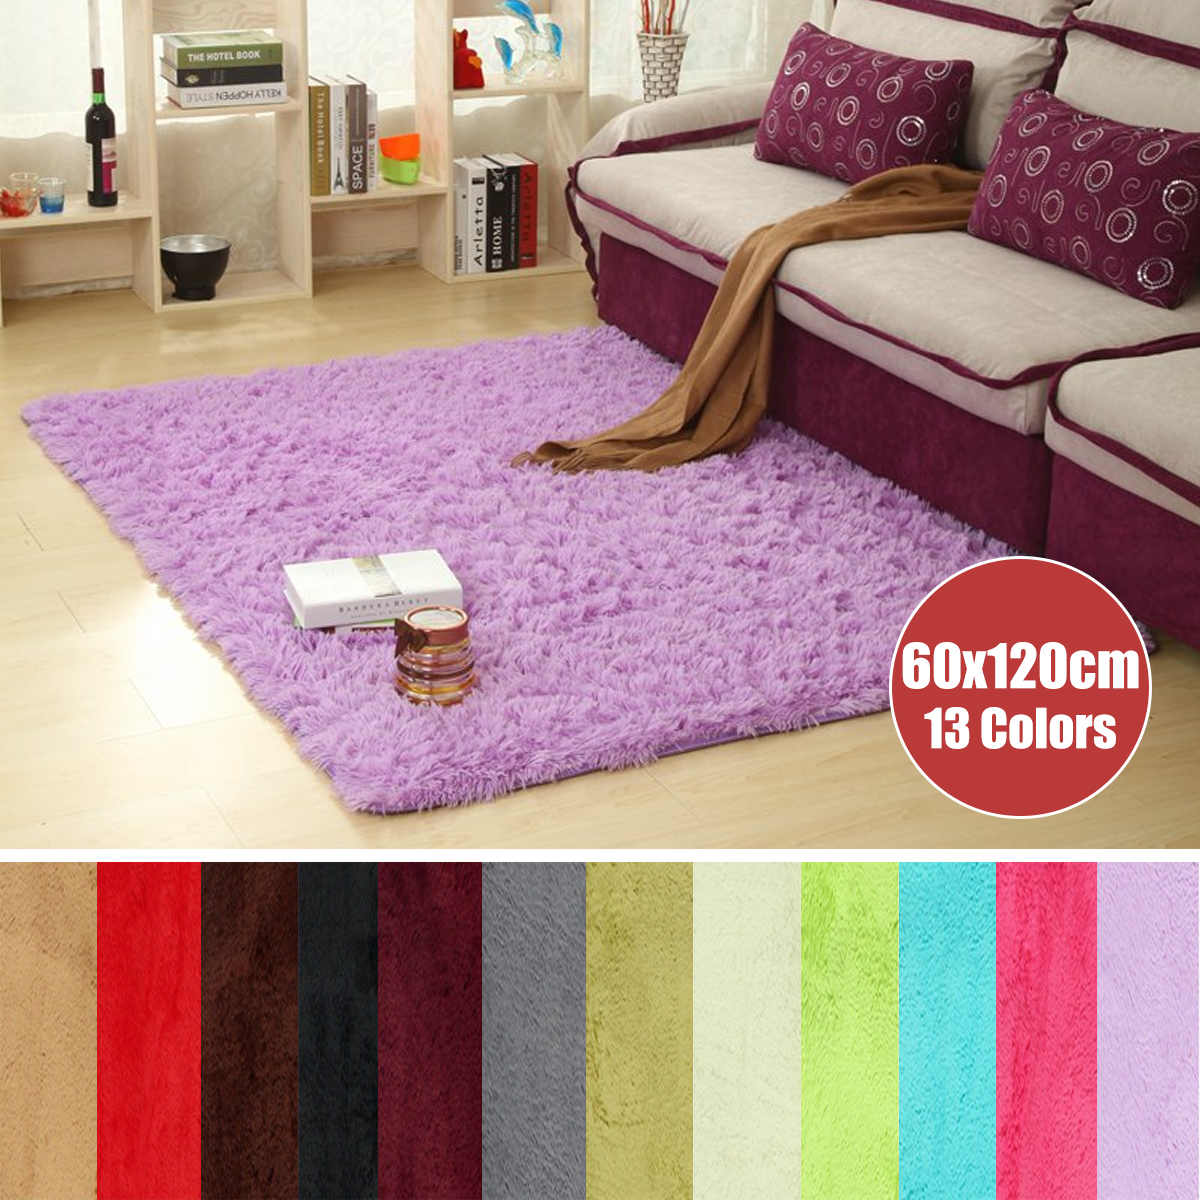 23.62x47.2u0027u0027 13 Colors Fluffy Rectangle Floor Rug Anti Skid Shaggy